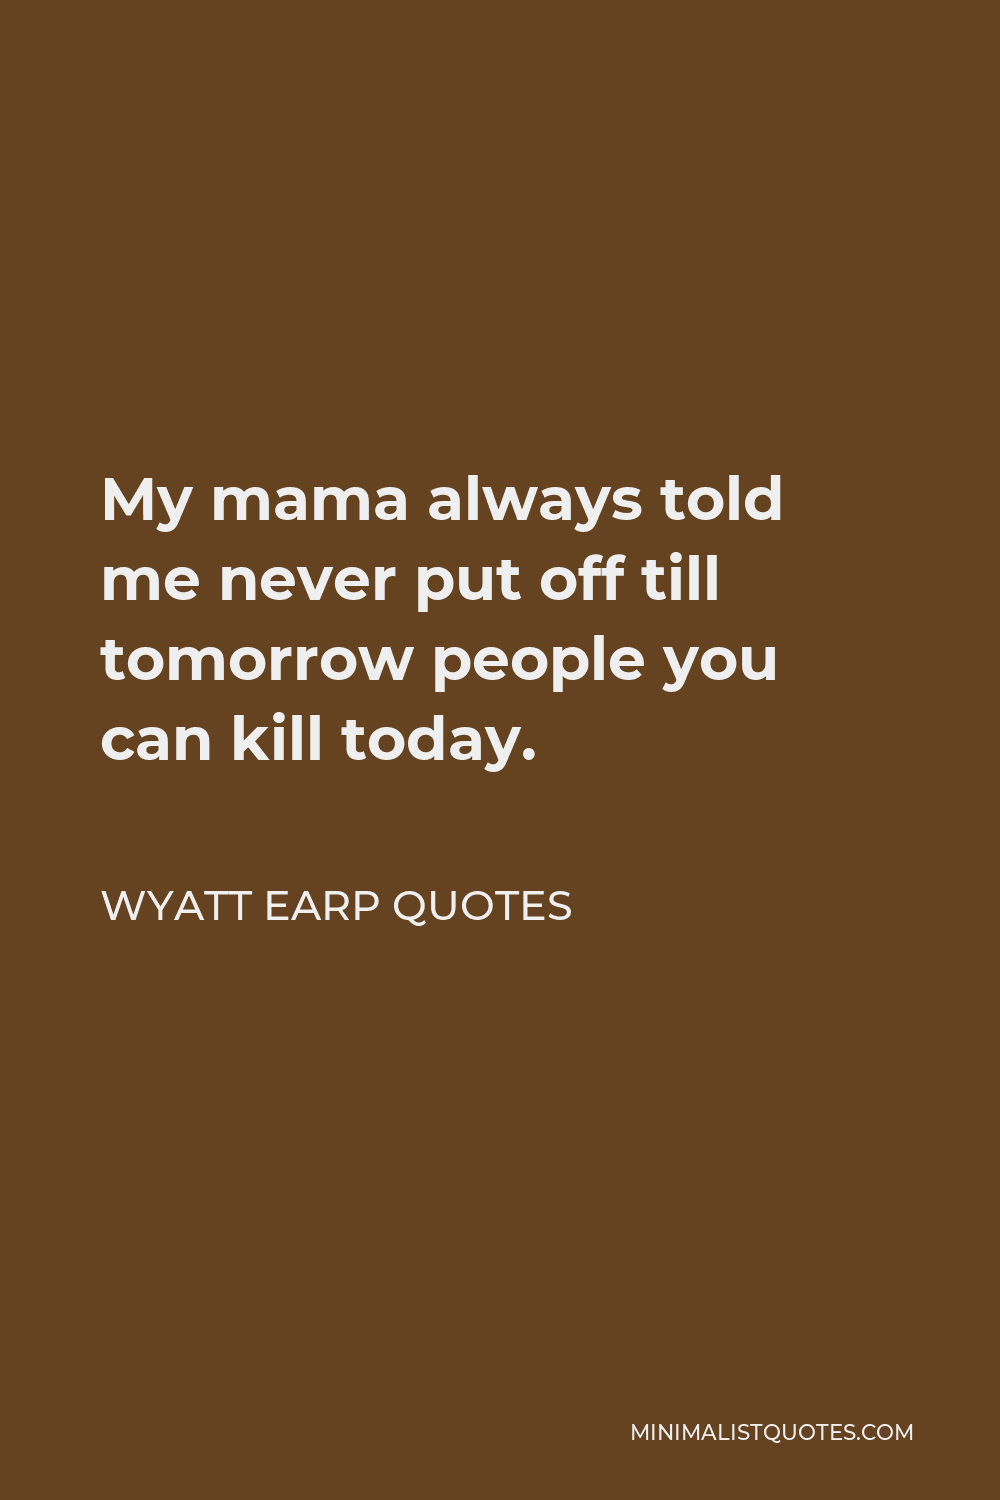 Wyatt Earp Quotes Quote - My mama always told me never put off till tomorrow people you can kill today.